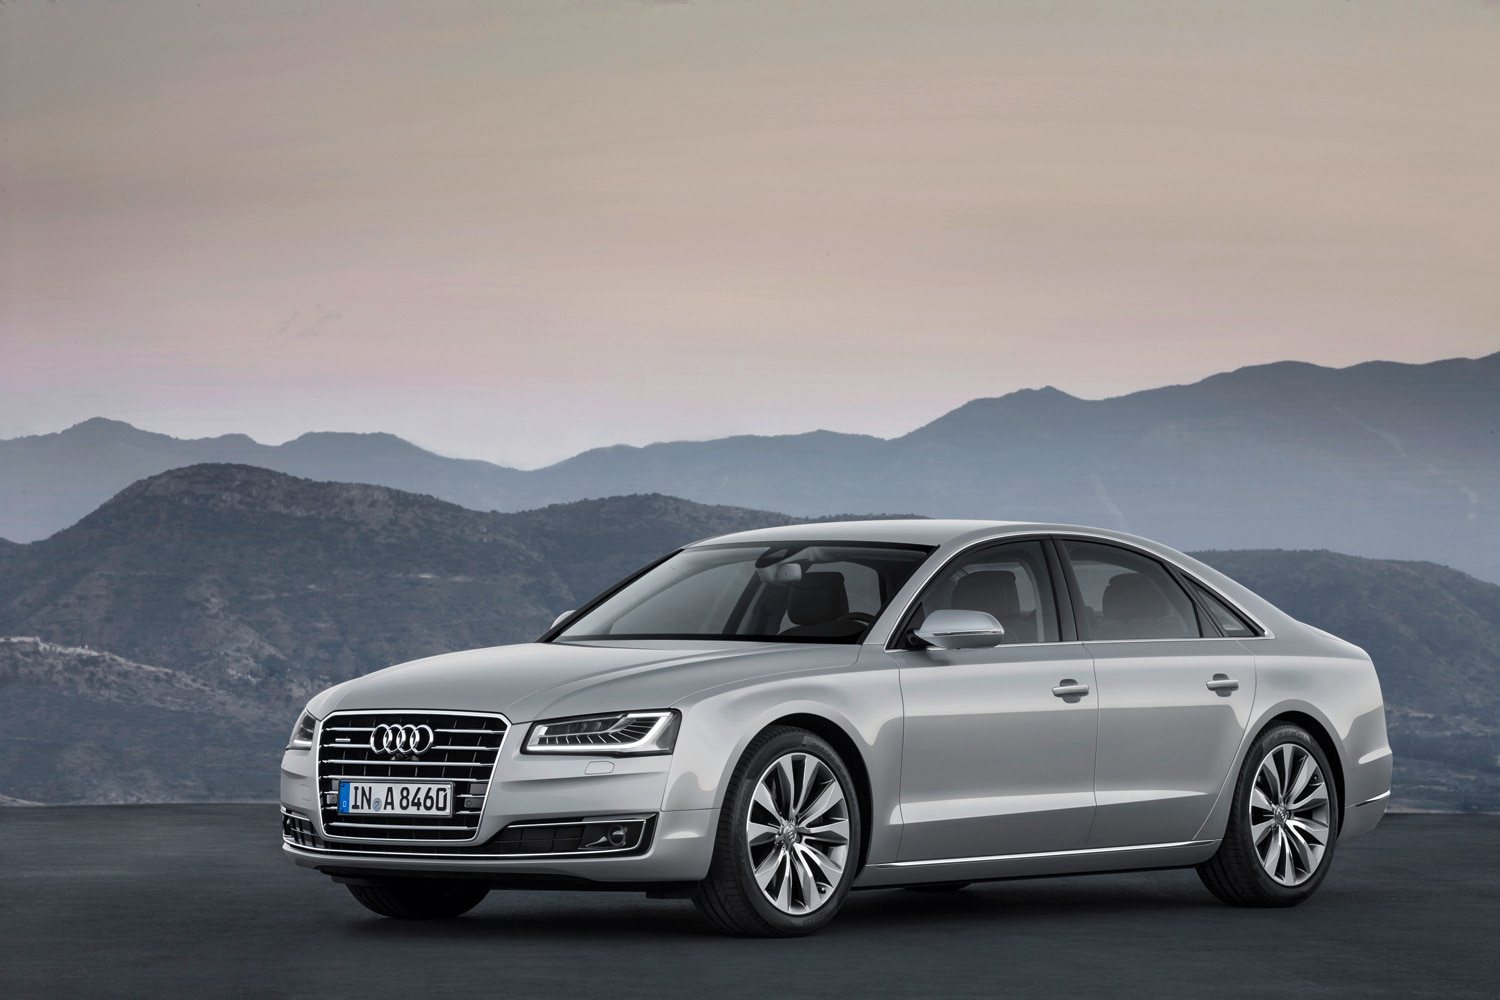 2015 Audi A8 TFSI Front Three Quarter 21